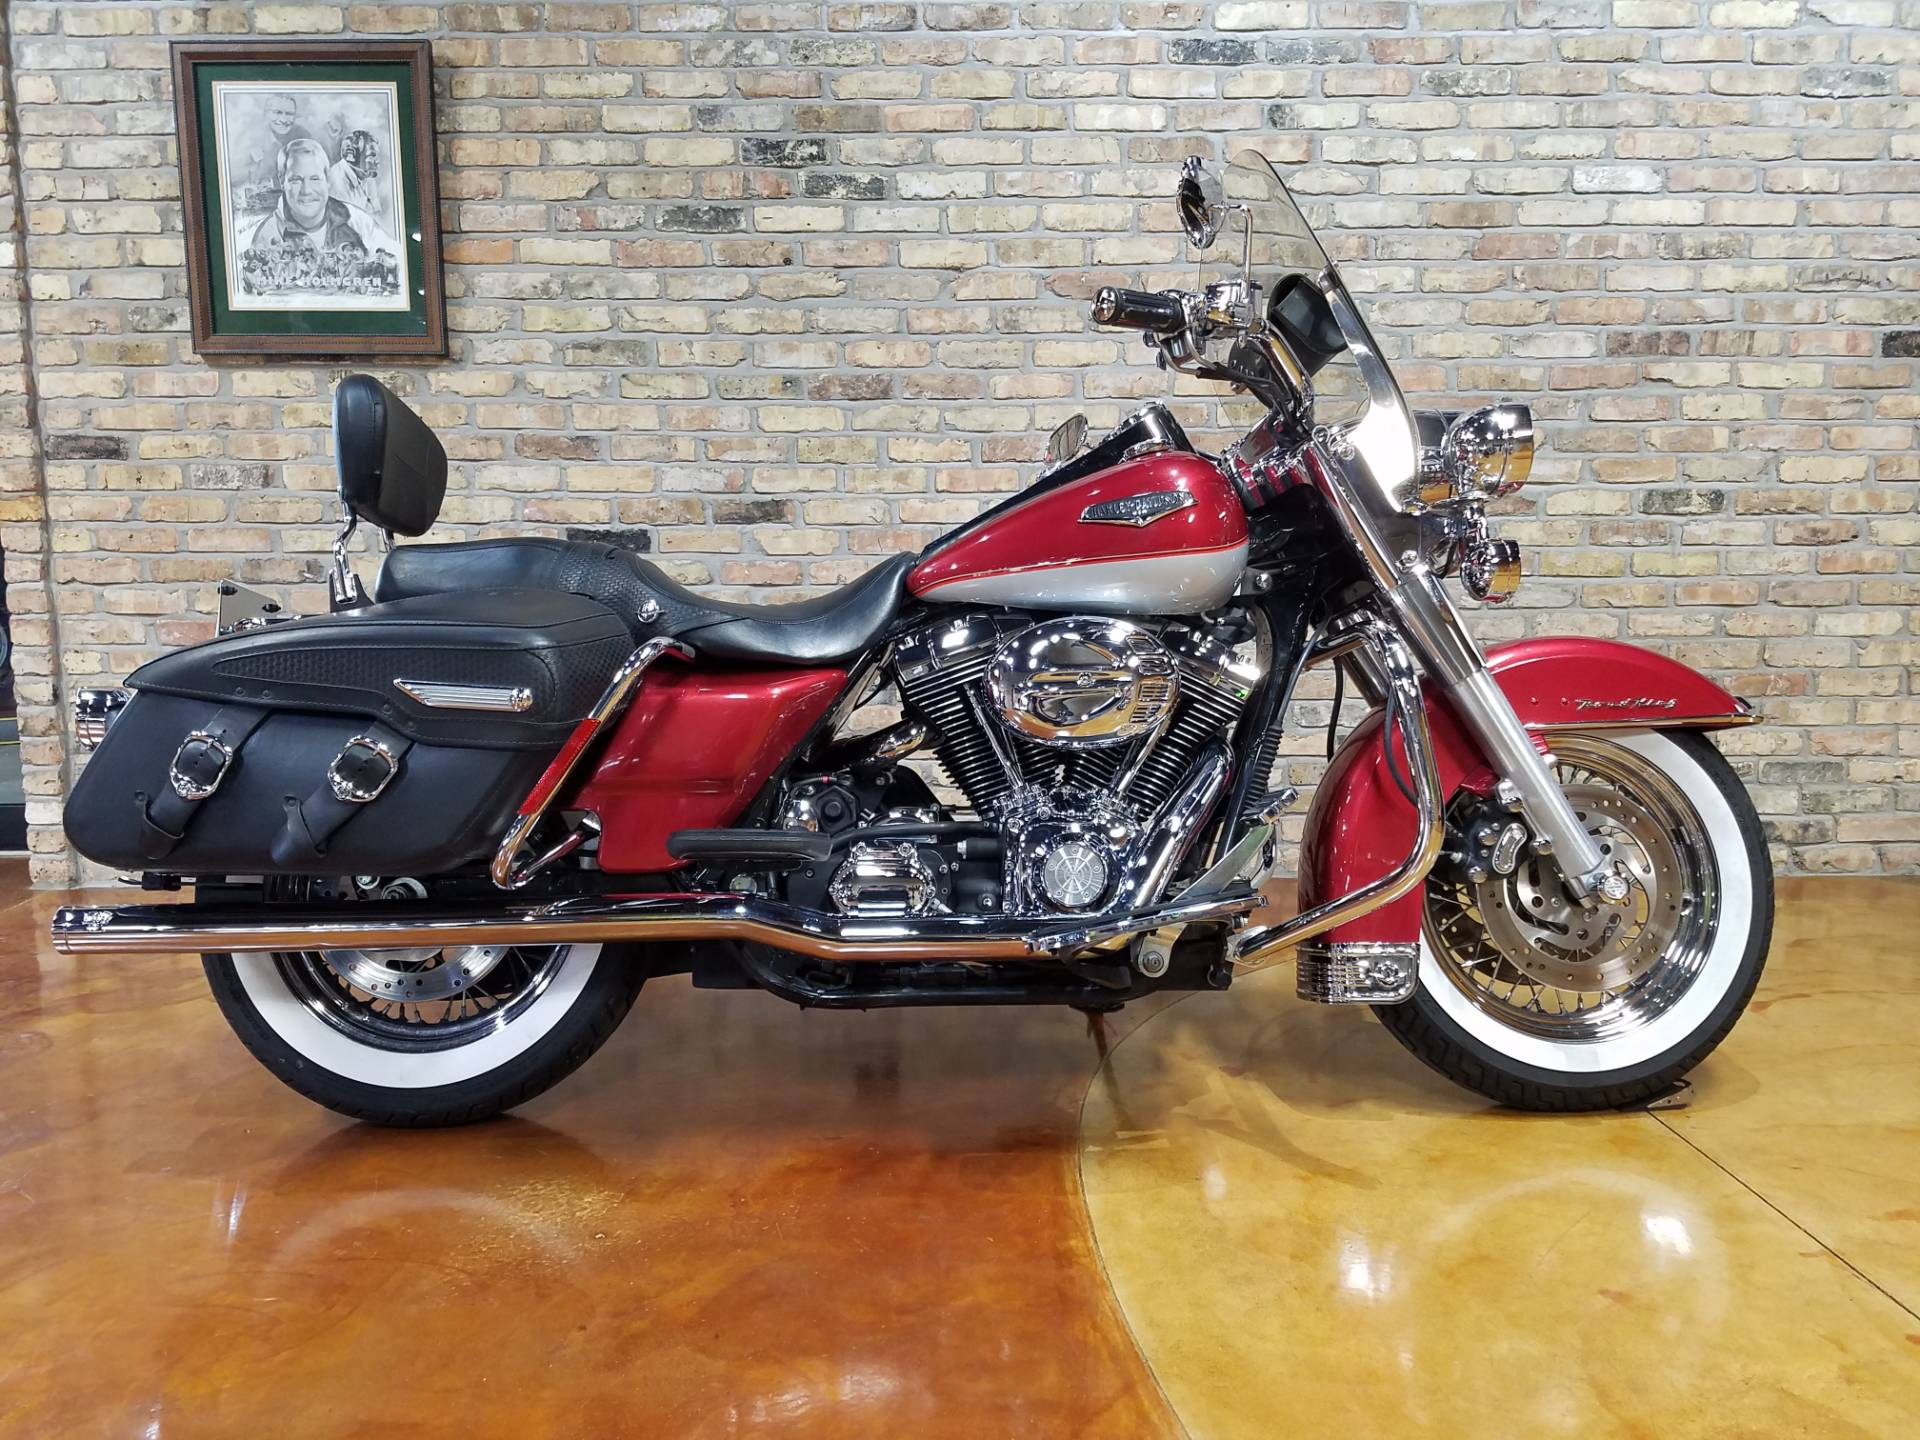 Used 2005 Harley Davidson Flhrci Road King Classic Motorcycles In Big Bend Wi 4322 Two Tone Sierra Red Pearl Brilliant Silver Pearl